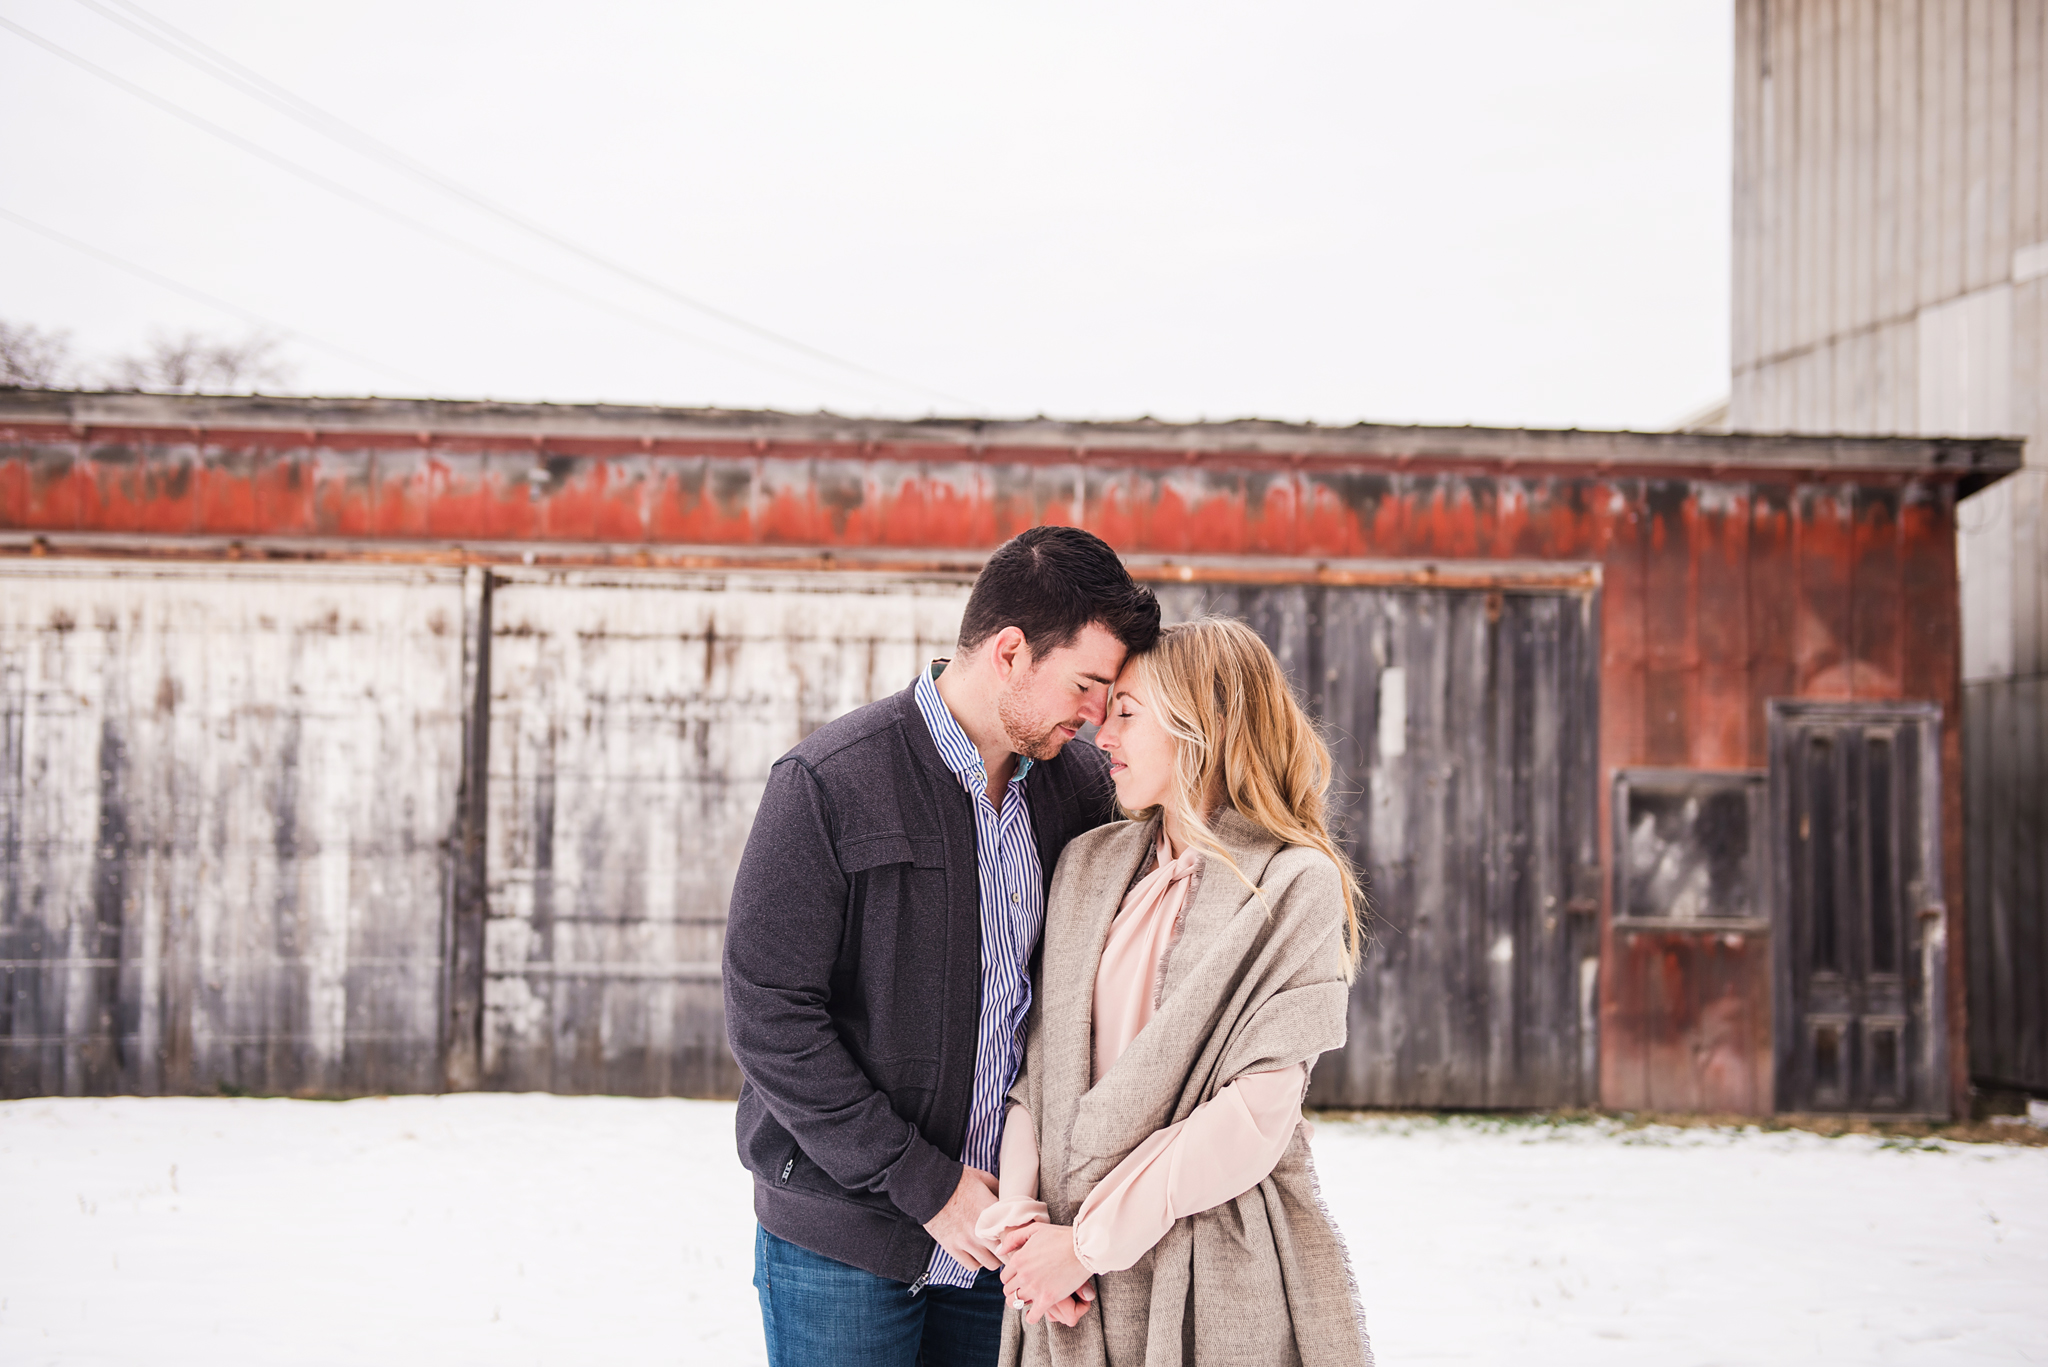 Schoen_Place_Rochester_Engagement_Session_JILL_STUDIO_Rochester_NY_Photographer_DSC_1198.jpg